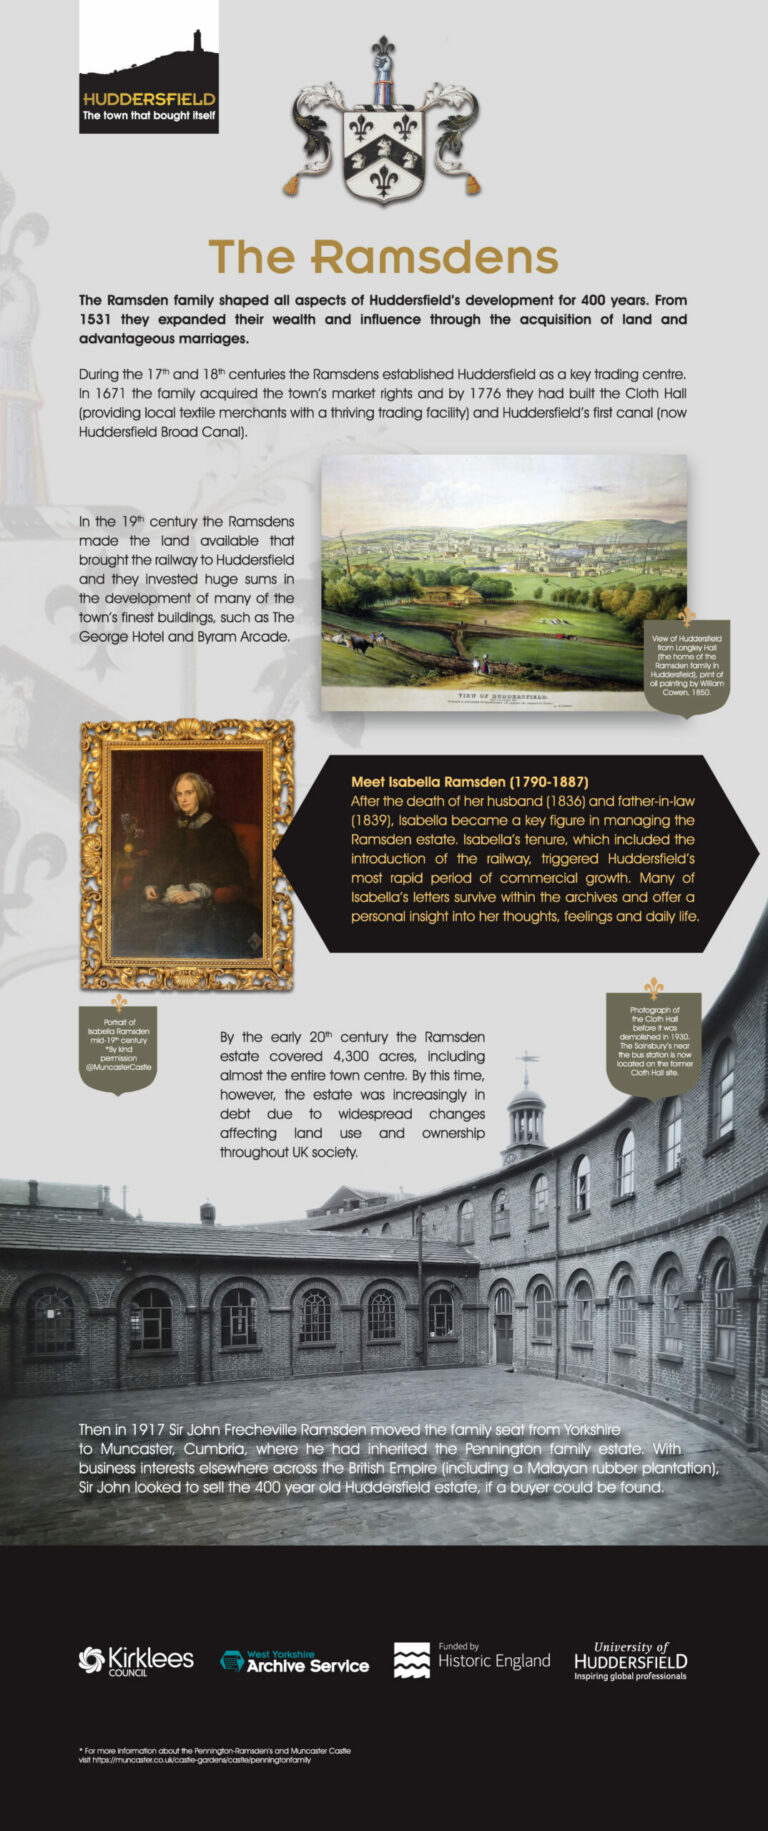 Find out more about the Ramsdens.